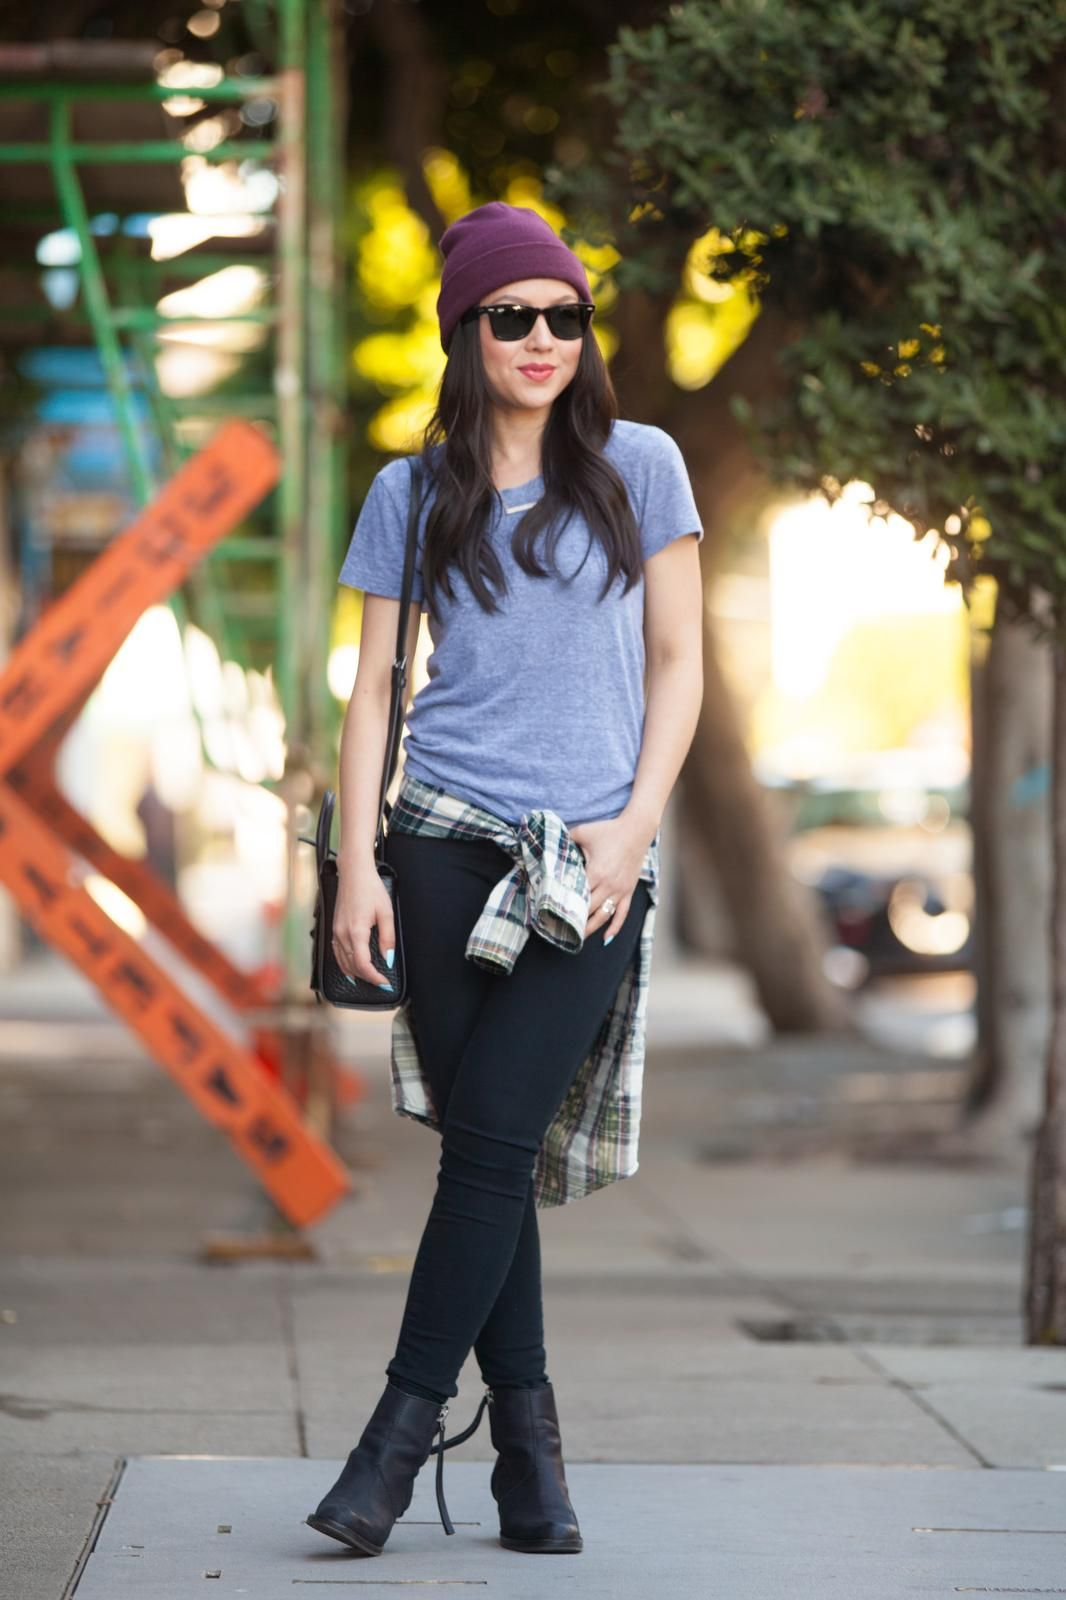 Tomboy is a fashionable style of a tomboy girl